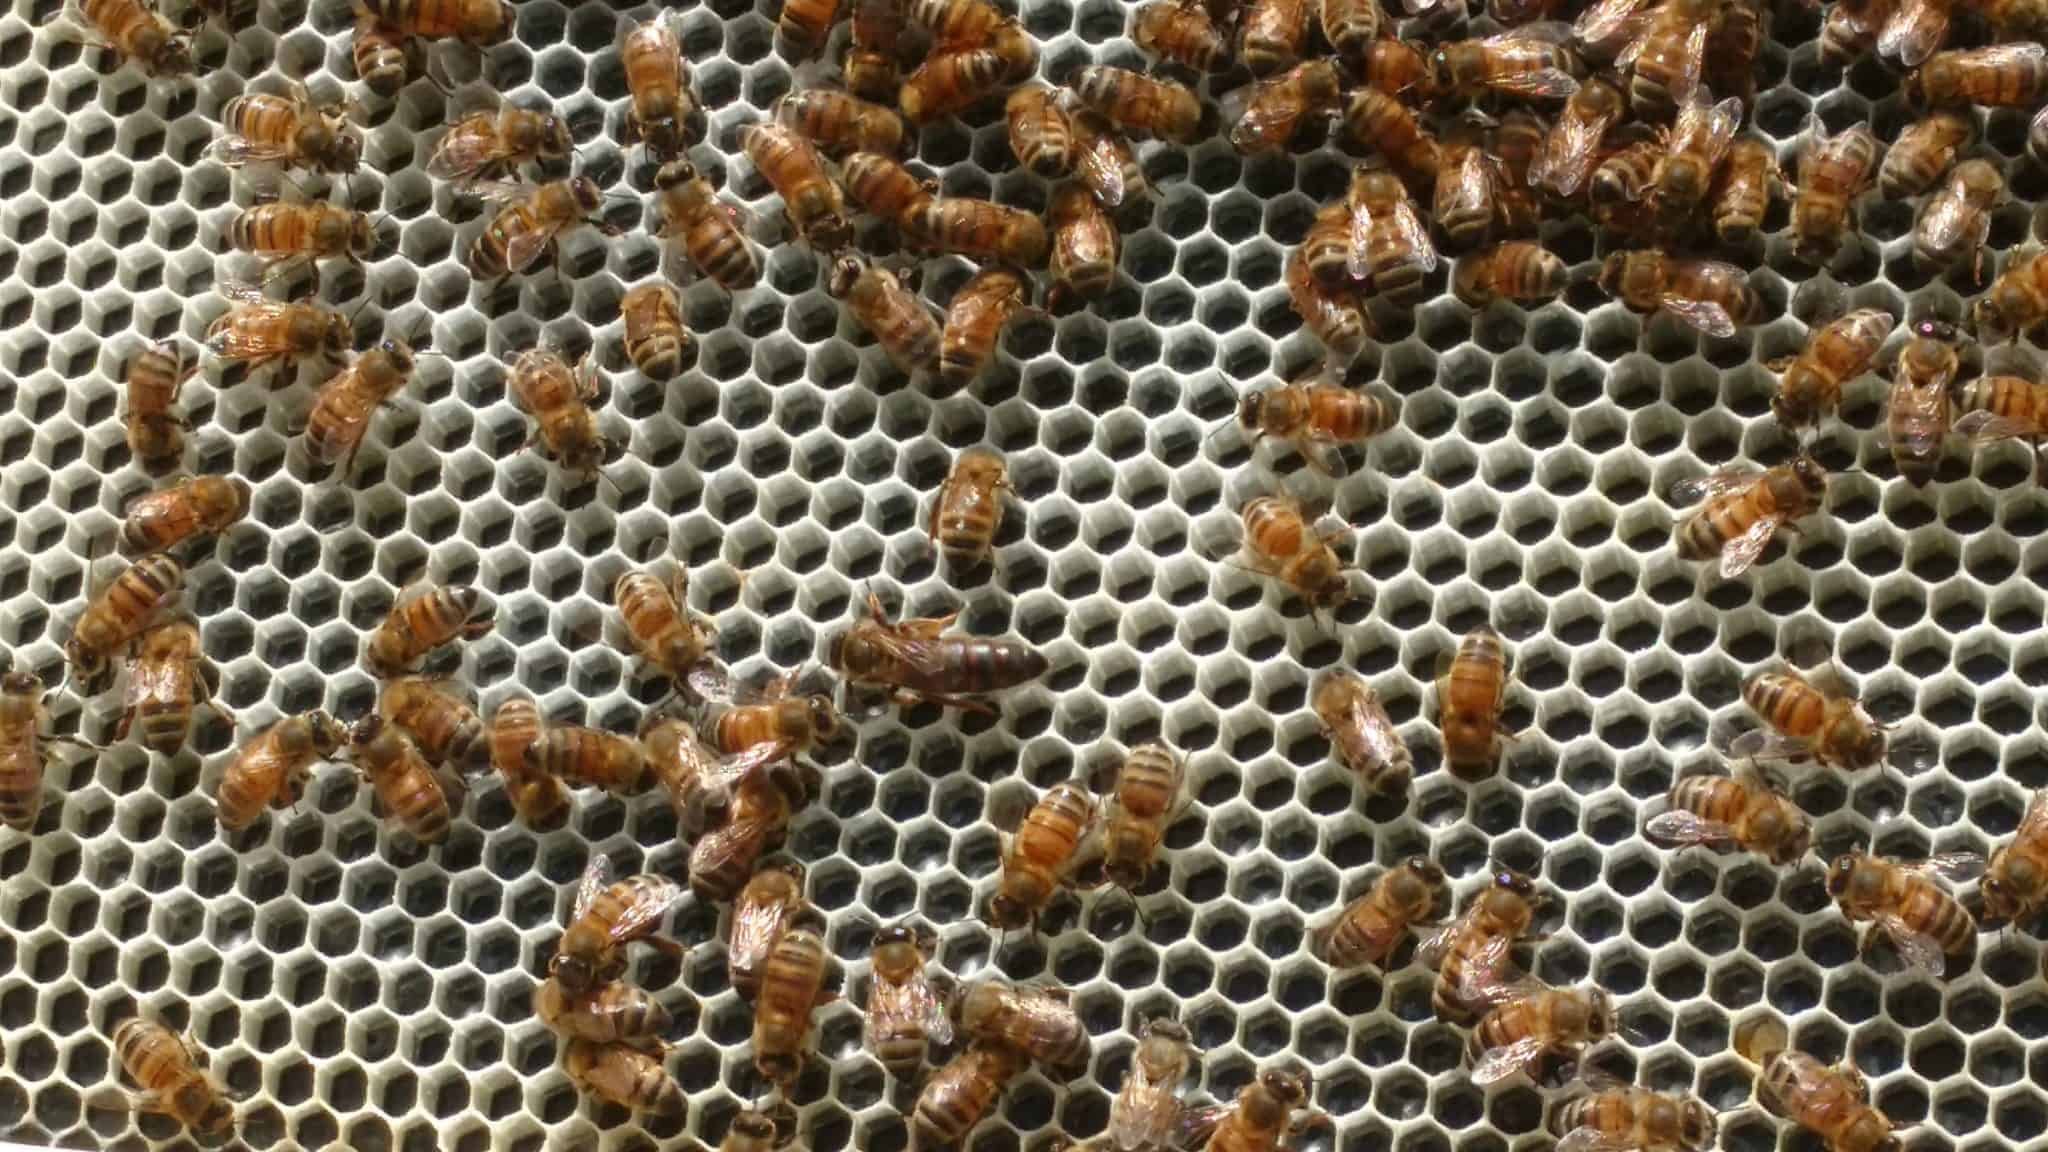 Monitoring Varroa Mite Levels - PerfectBee